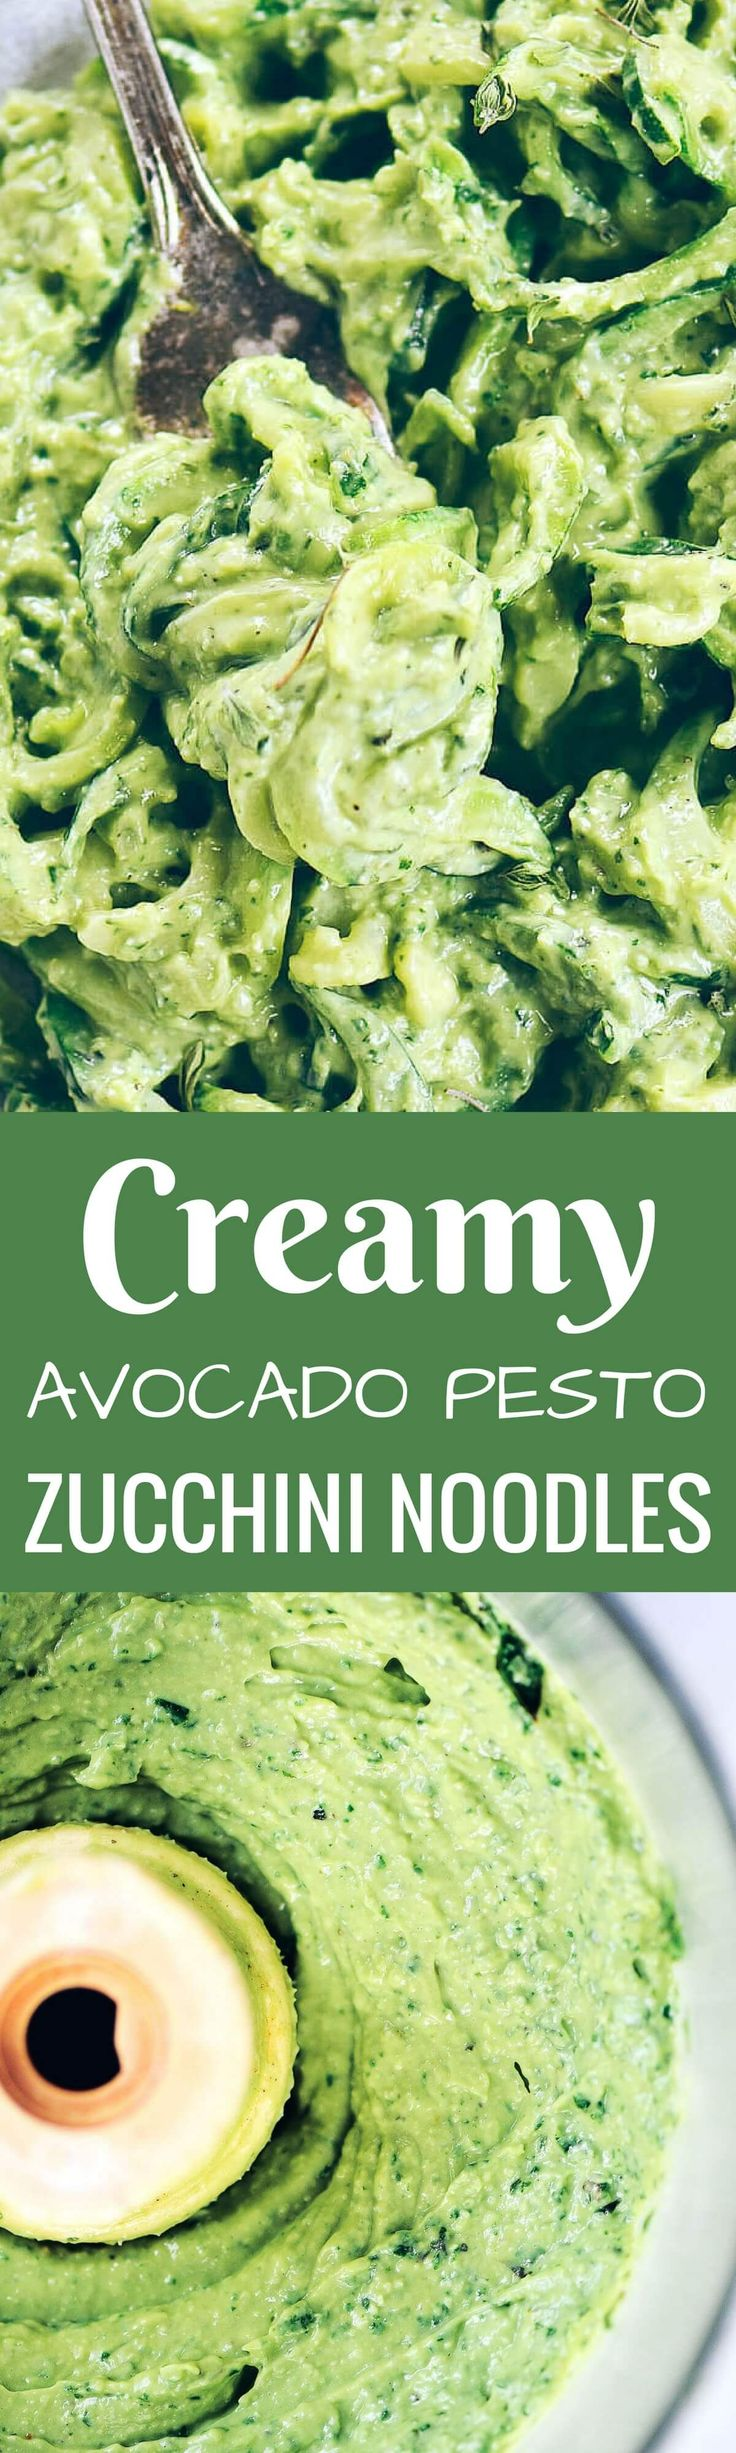 Save this zoodles recipe for zucchini noodles with creamy avocado pesto for a healthy weeknight dish you can pair with chicken, shrimp or steak! Easy whole30 dinner. Easy healthy meal. Zucchini noodle recipe. Best zoodle recipes. whole30 meal plan. Easy whole30 dinner recipes. Easy whole30 dinner recipes. Whole30 recipes. Whole30 lunch. Whole30 meal planning. Whole30 meal prep. Healthy paleo meals. Healthy Whole30 recipes. Easy Whole30 recipes. Easy whole30 dinner recipes. Best avocado…